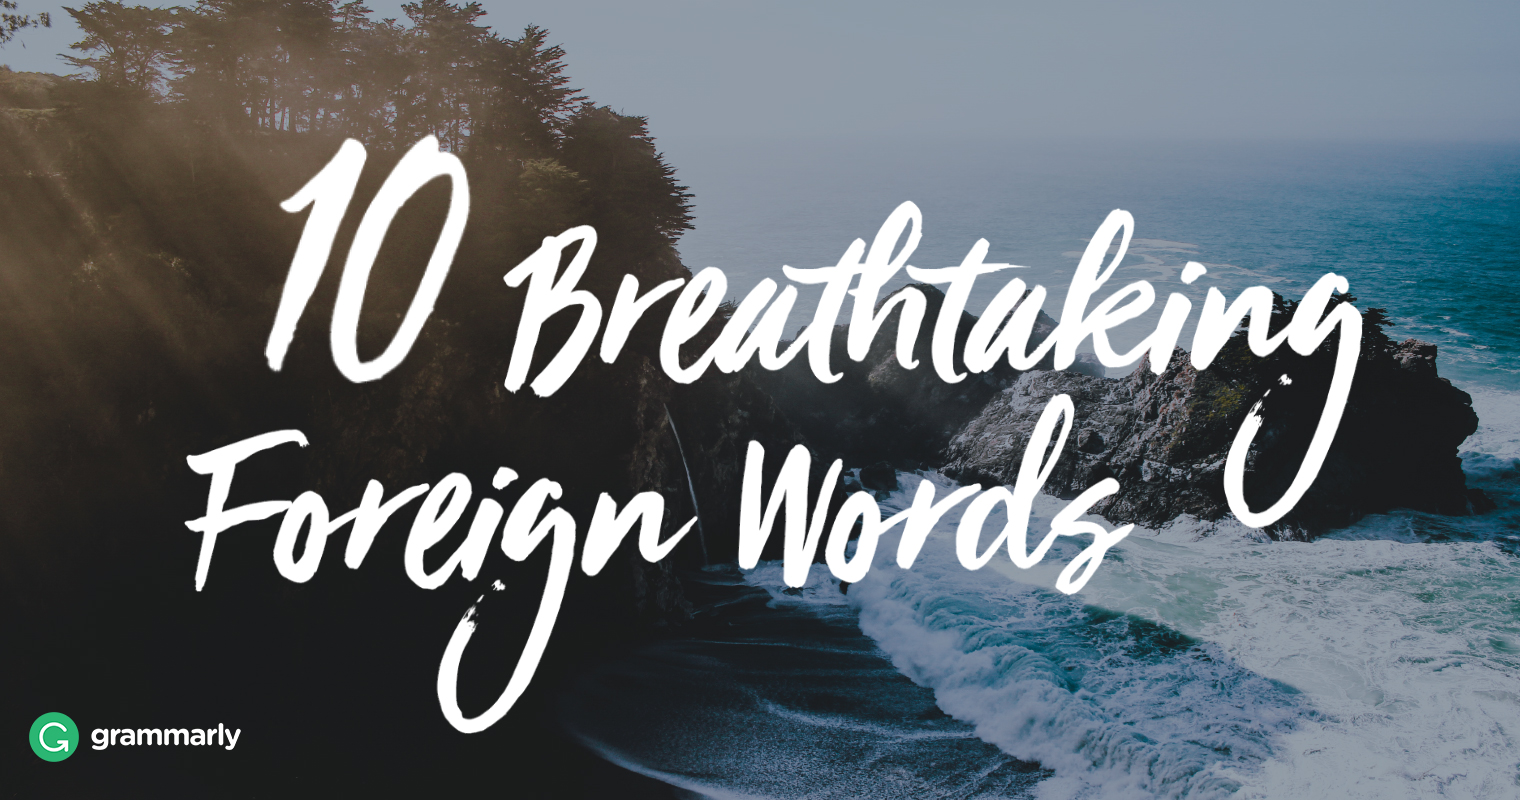 breathtaking foreign words grammarly blog